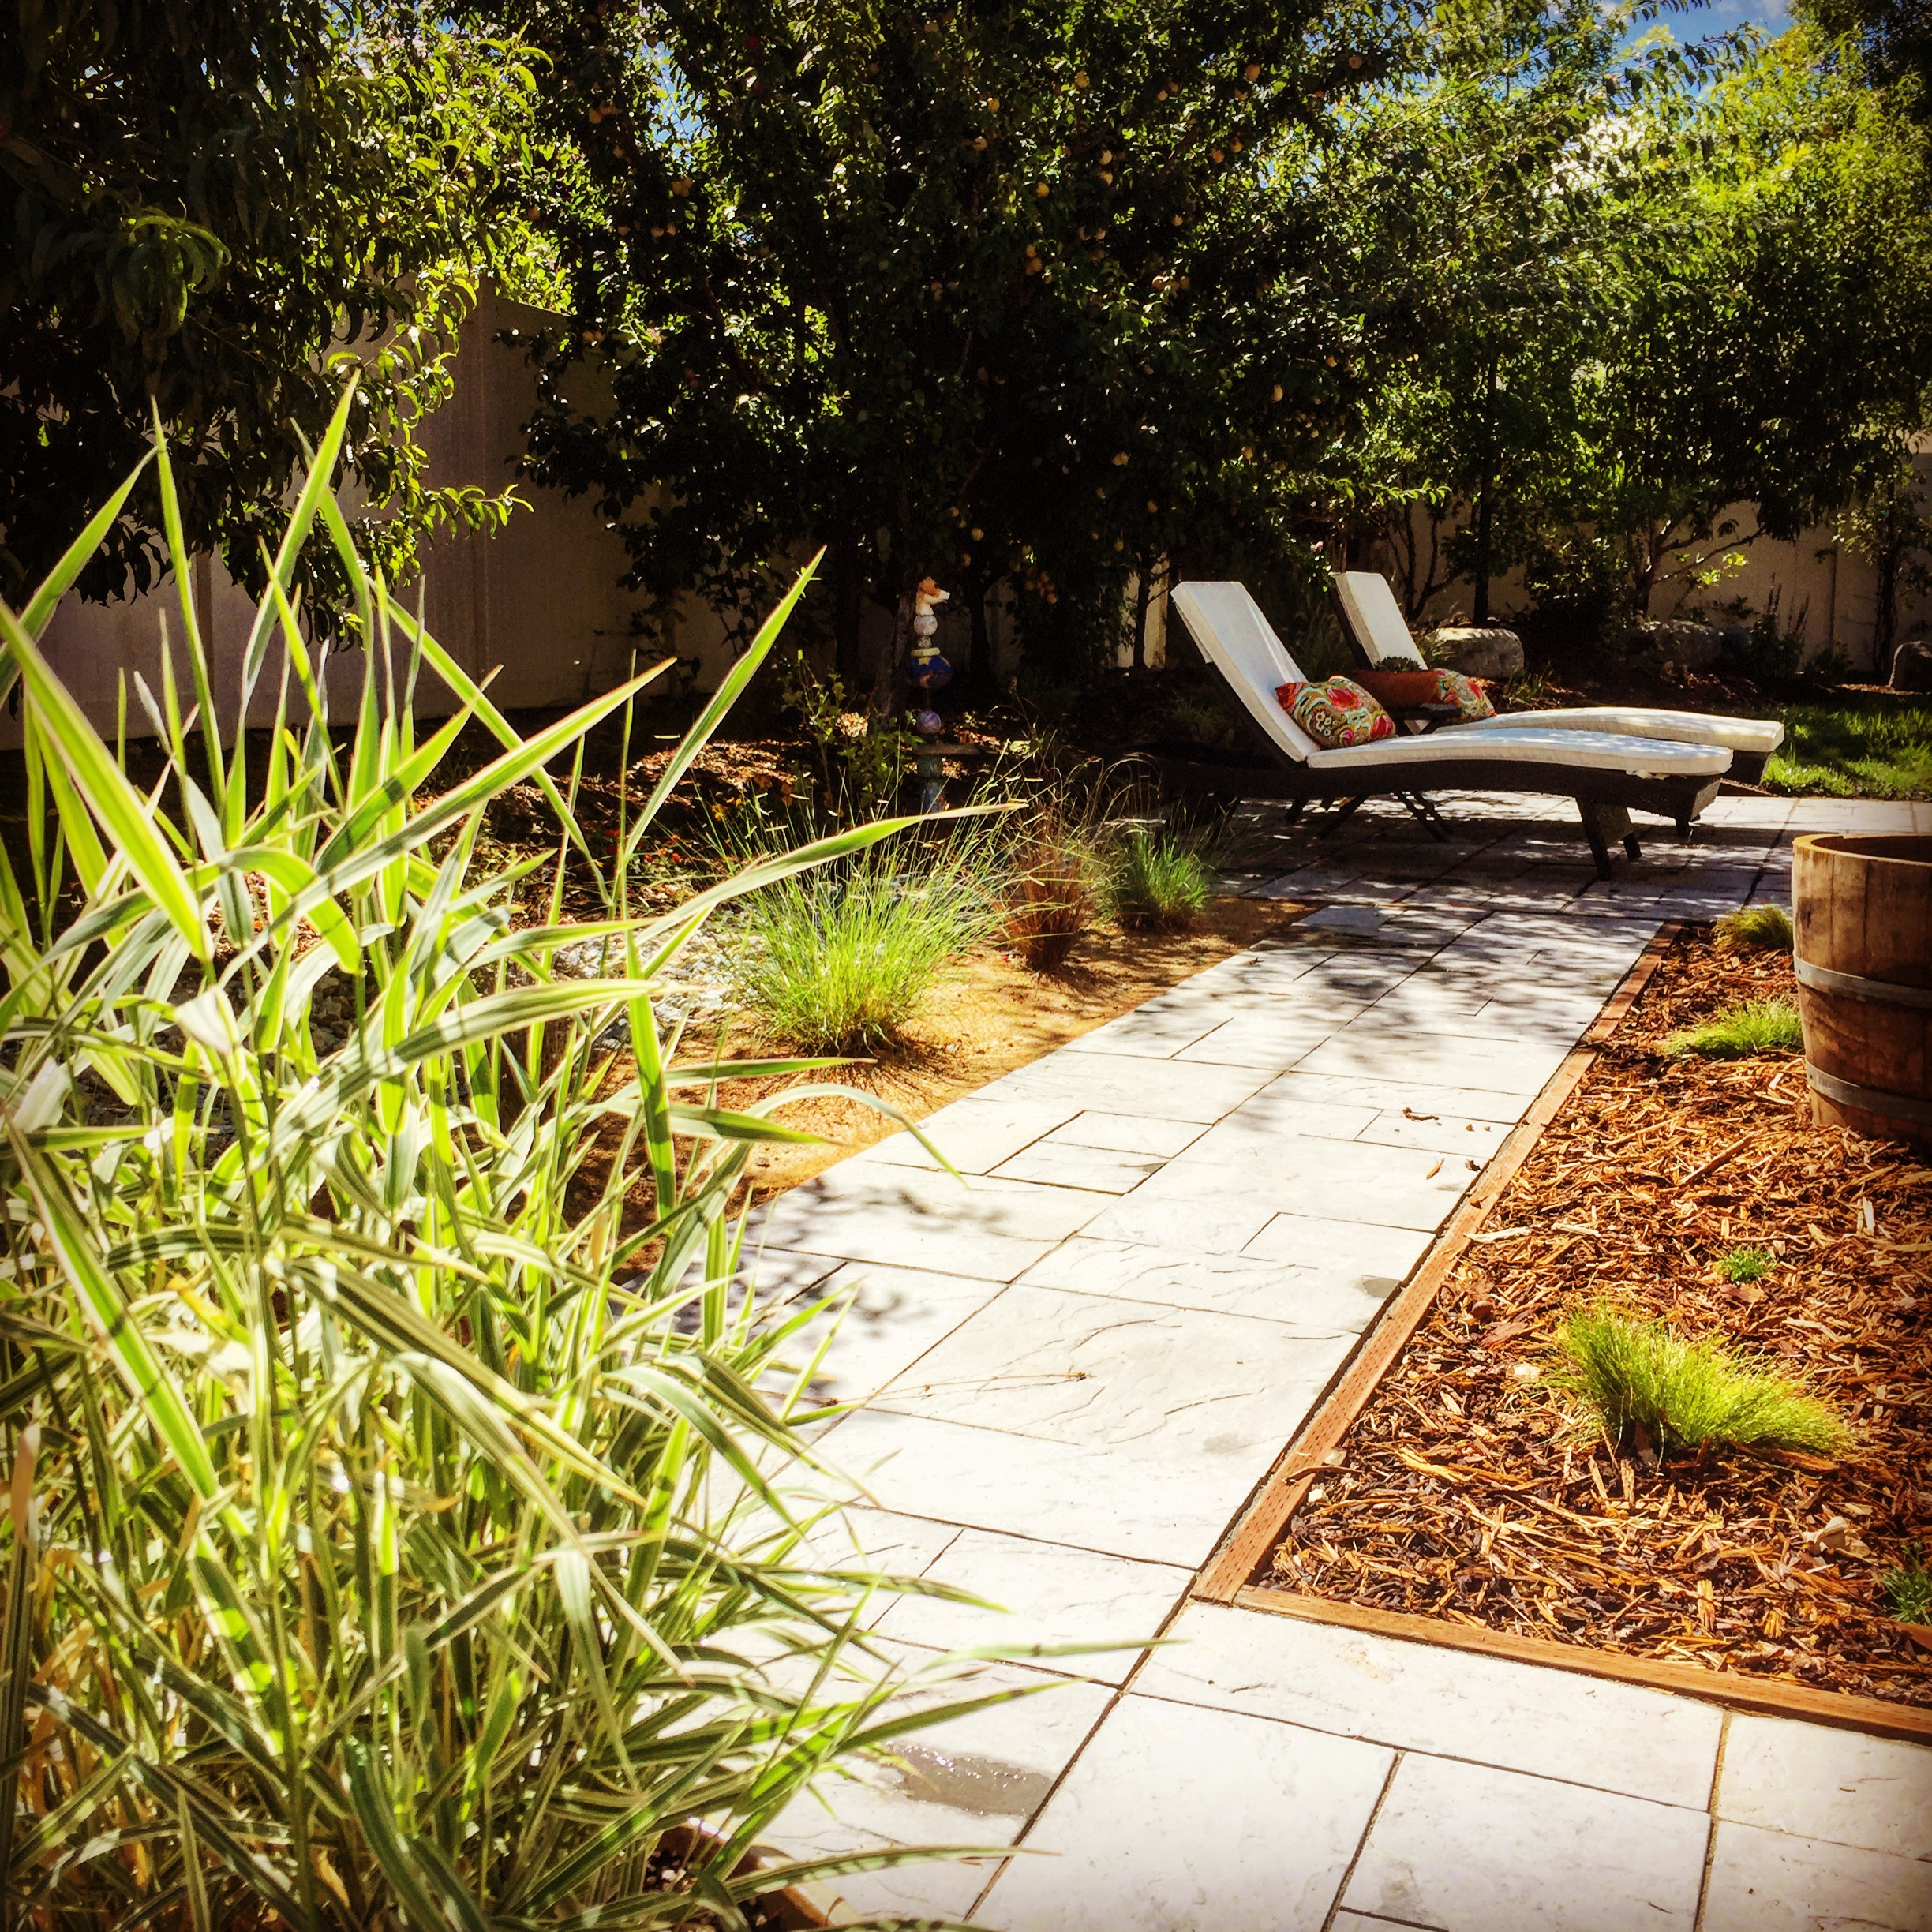 Custom blue stone hardscape patio, drought tolerant plants, custom borders, variety of textures and color.